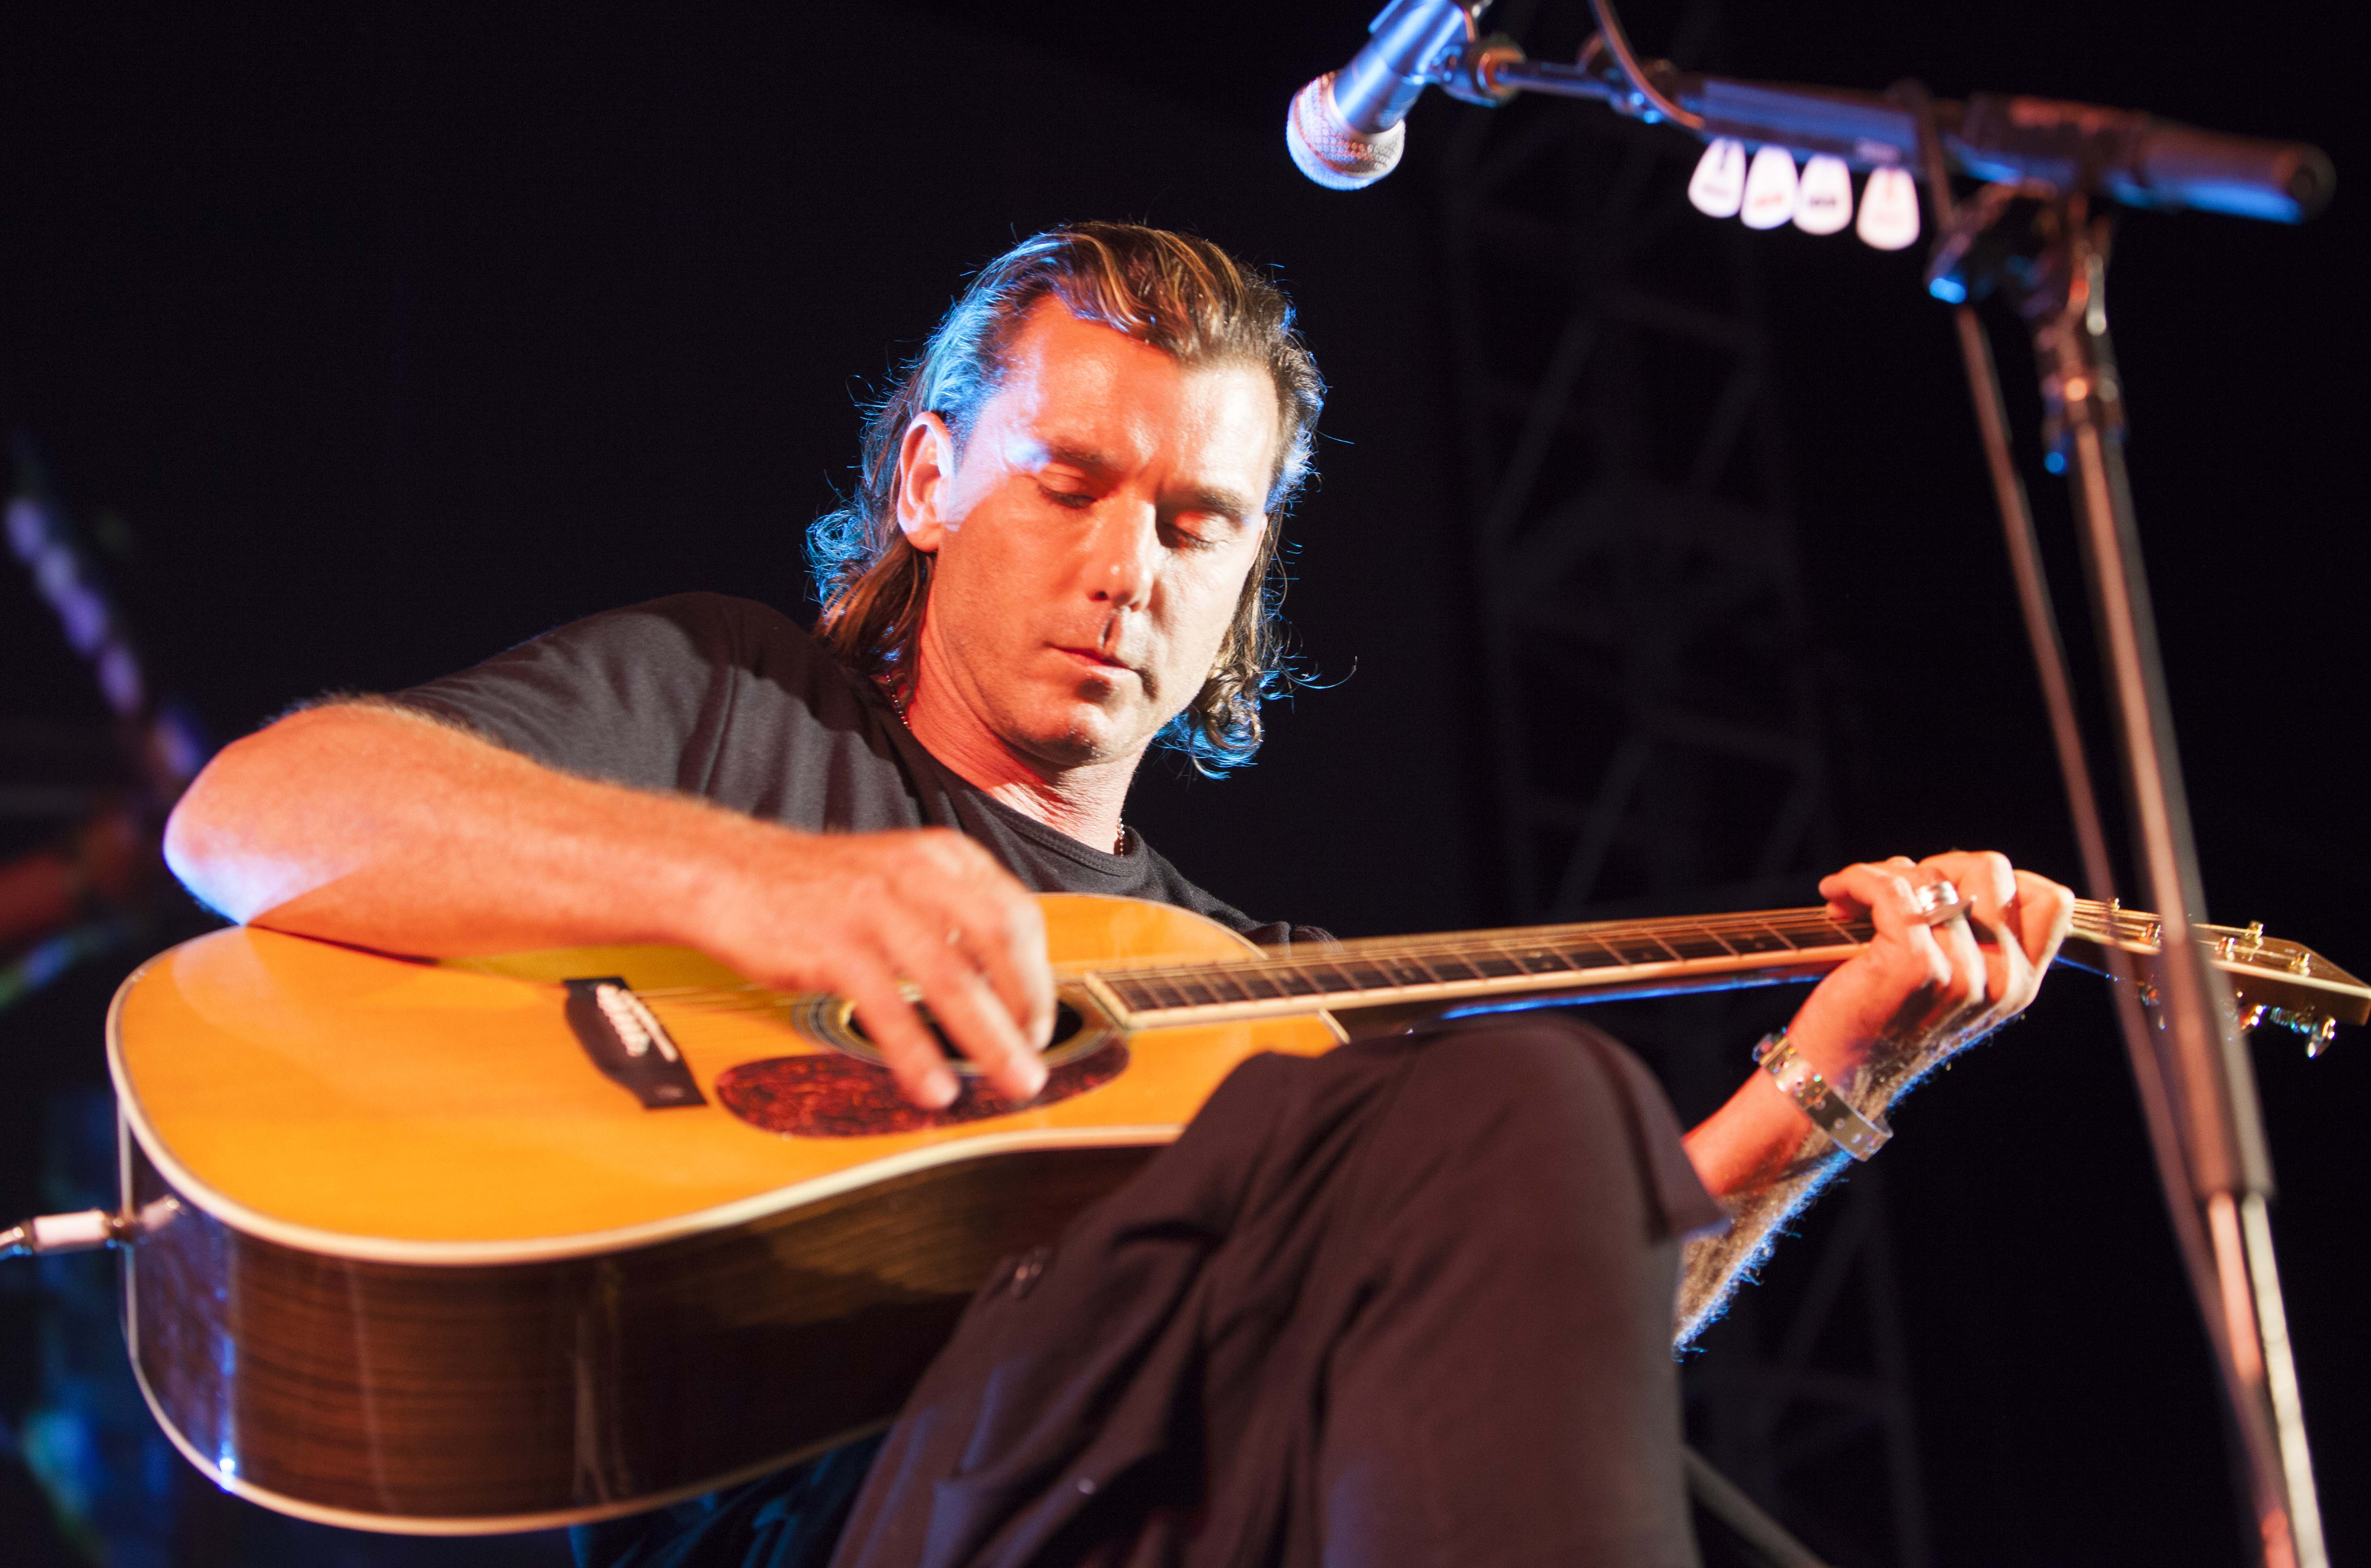 Gavin Rossdale Performing at the Season 5 Sunset on the Beach Premiere